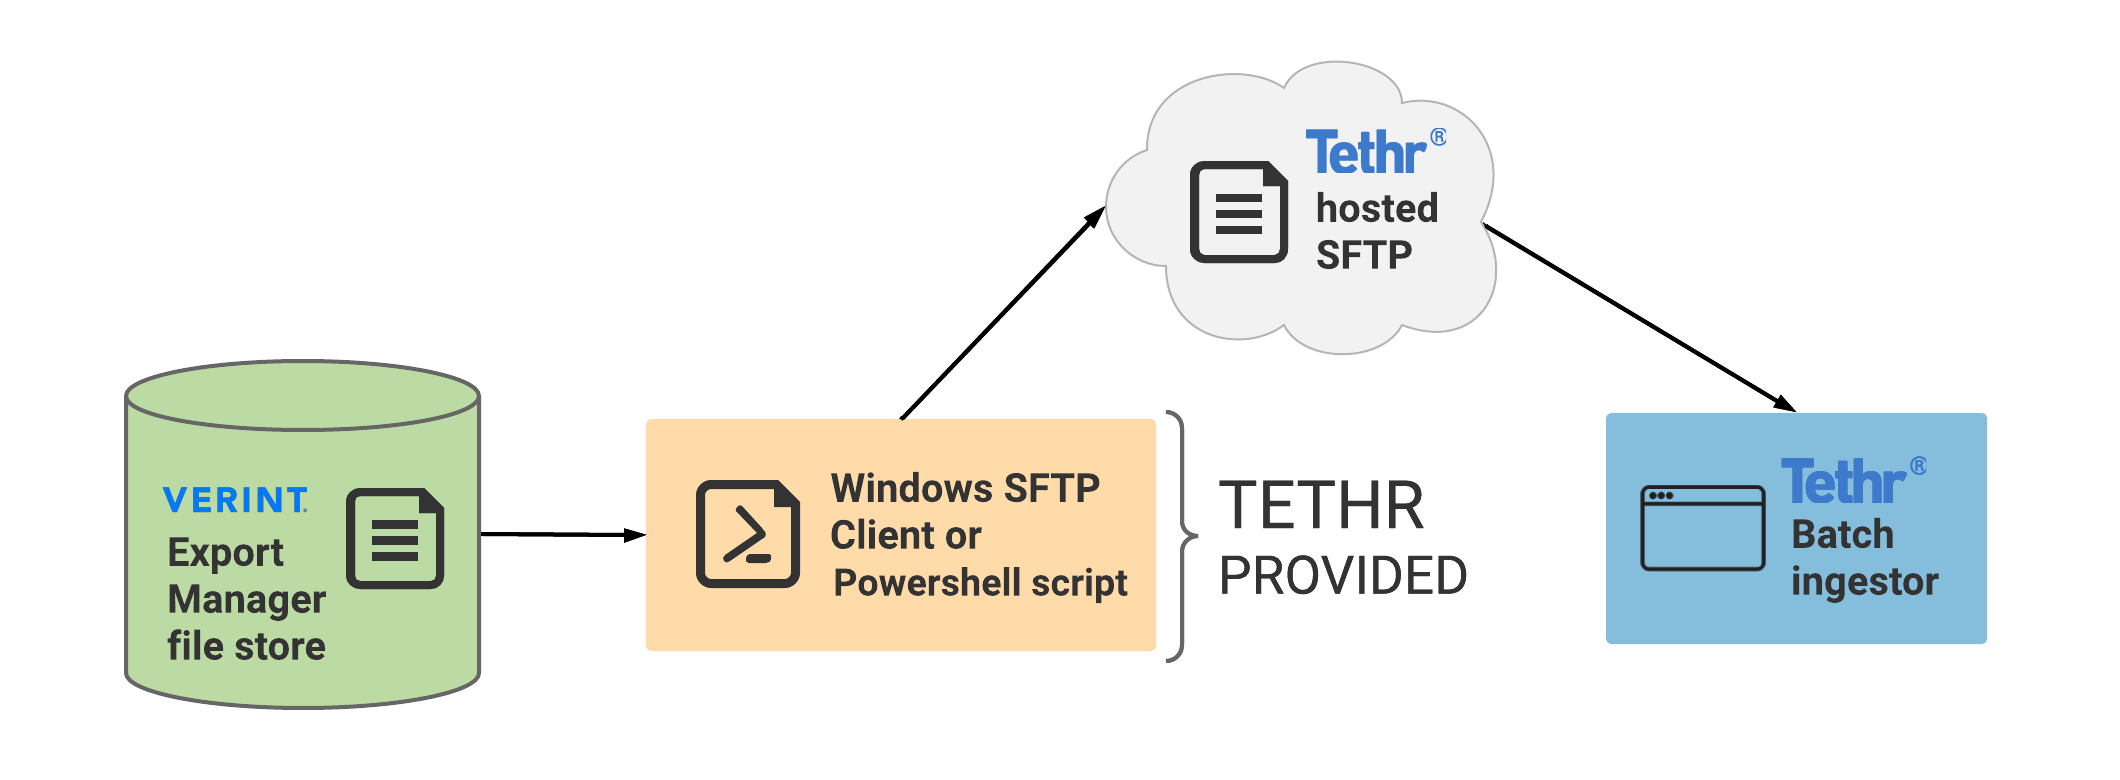 Verint_integrations_with_Tethr-Configure_a_Tethr-provided_Windows_SFTP_file_transfer.png